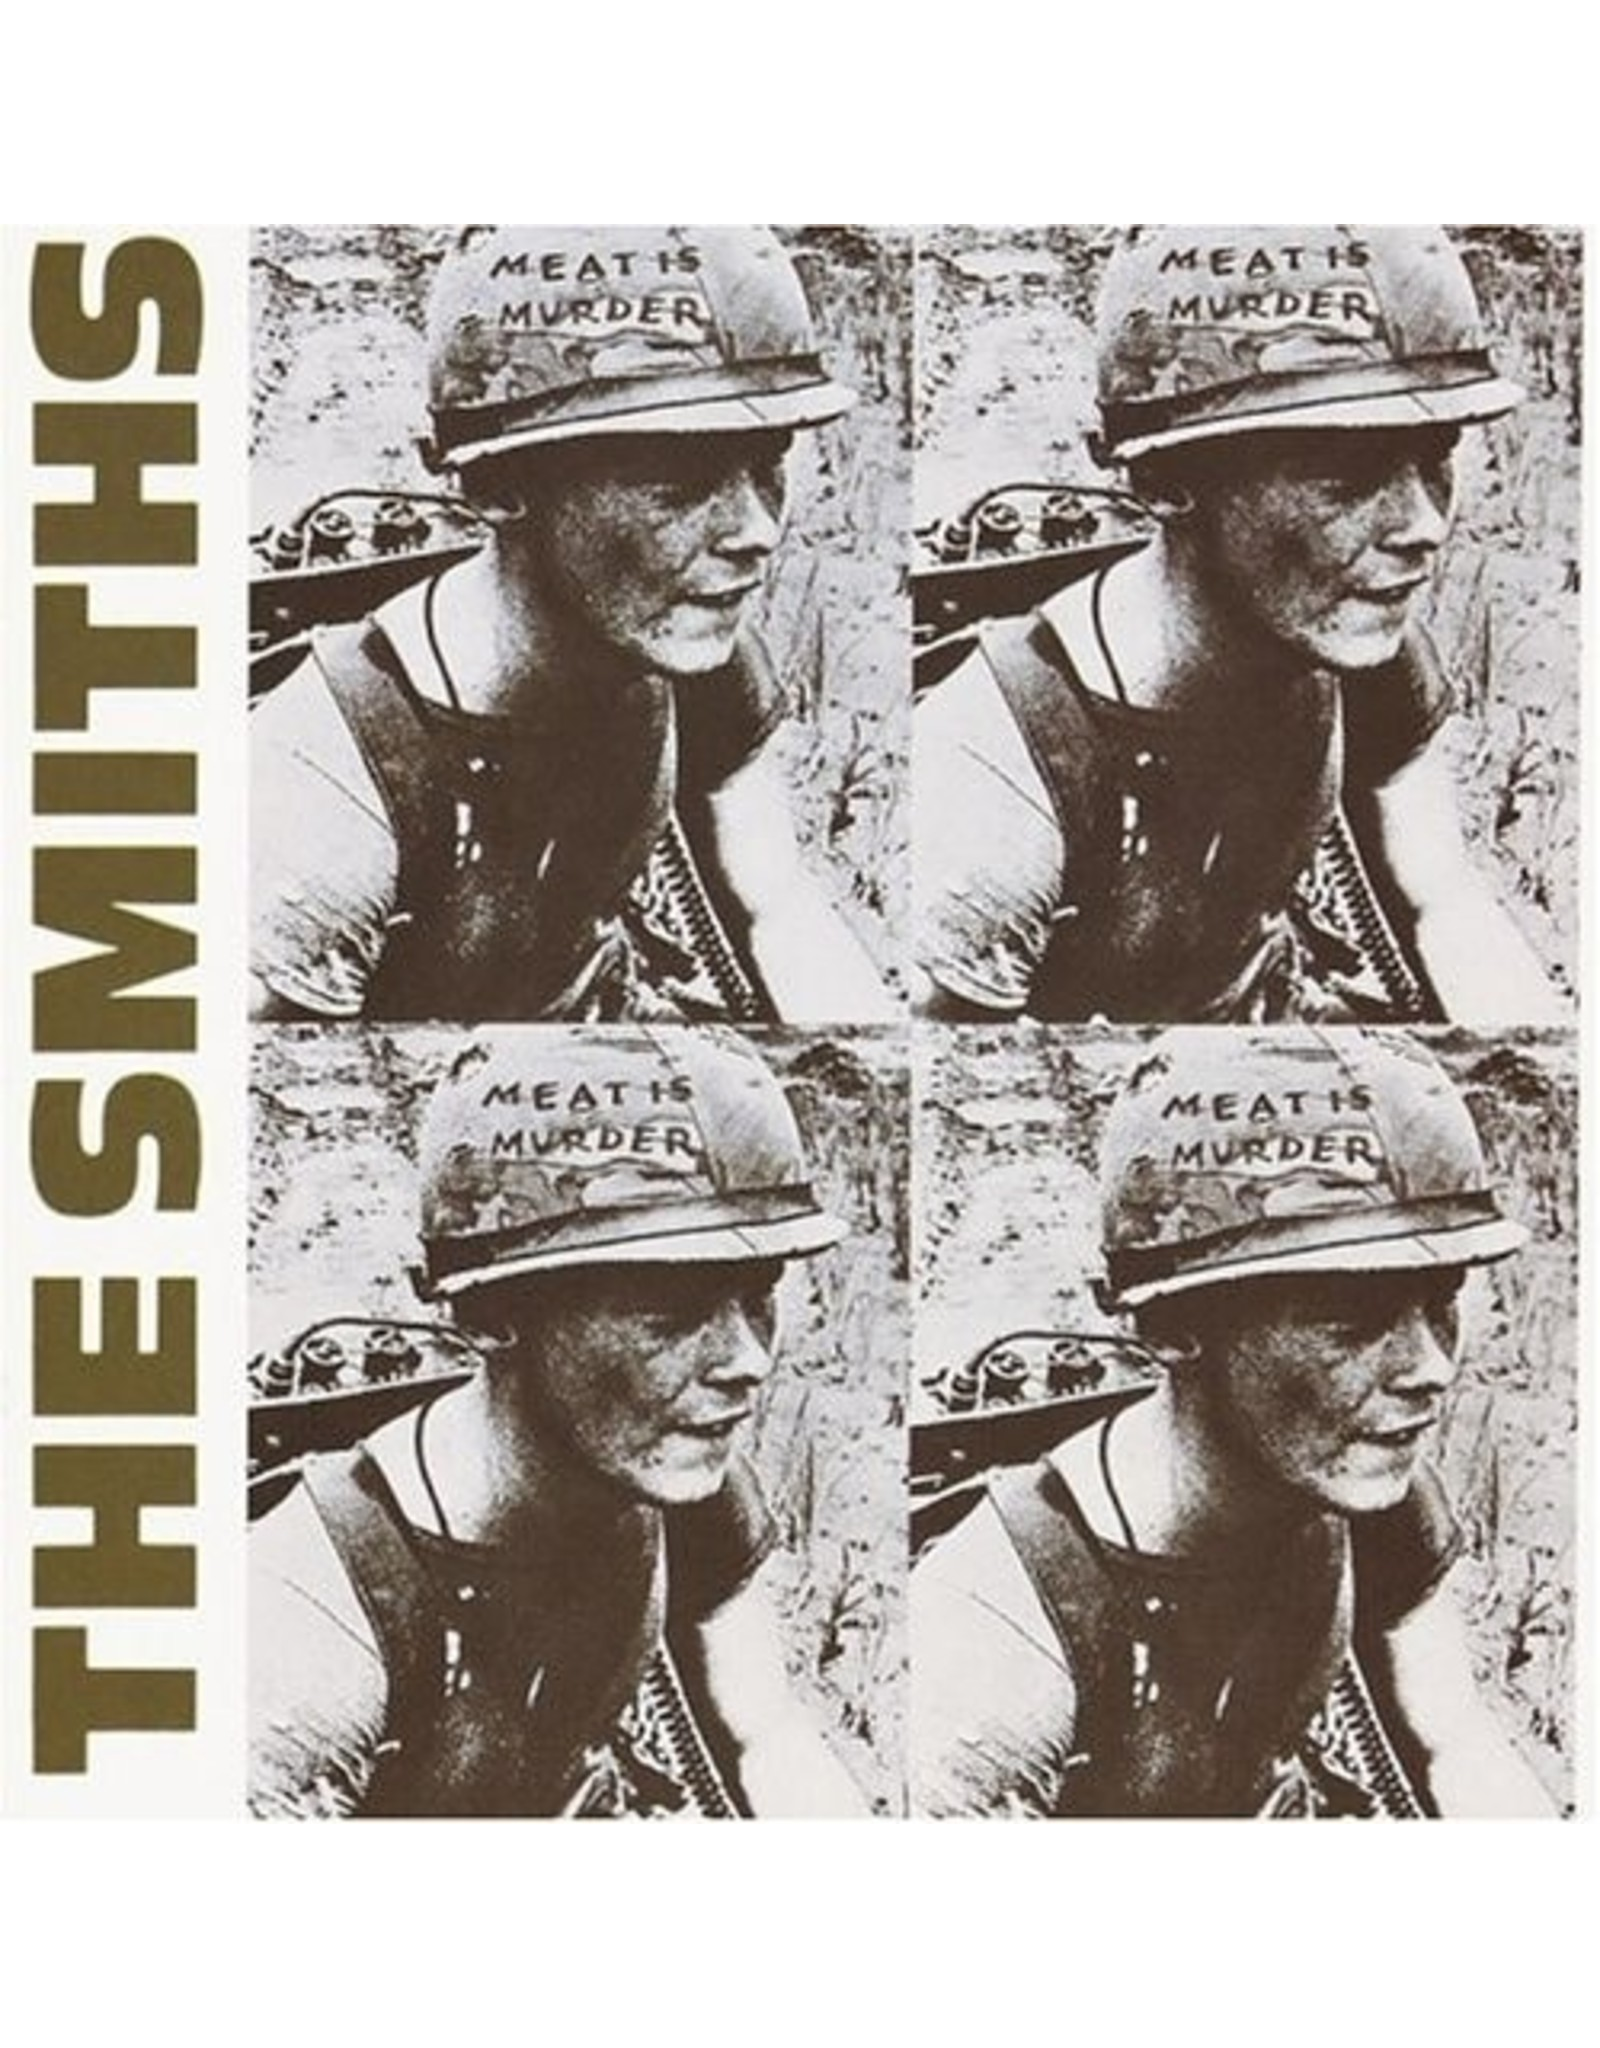 New Vinyl The Smiths - Meat Is Murder LP